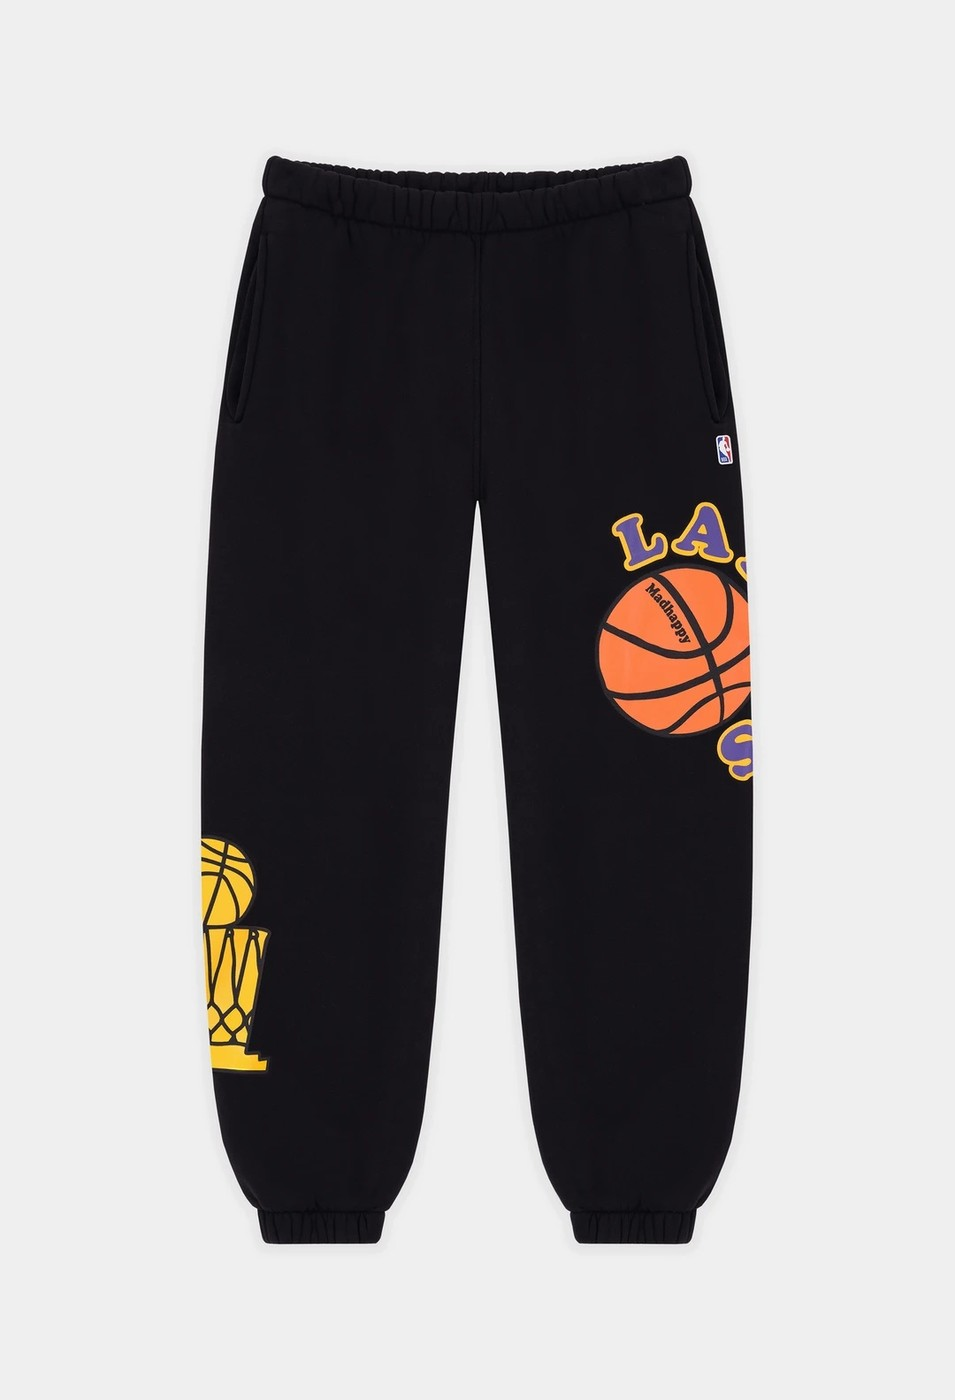 MADHAPPY x LAKERS HERITAGE SWEATPANT [SMALL] by MADHAPPY x L. A. LAKERS, available on grailed.com for $230 Gigi Hadid Pants Exact Product